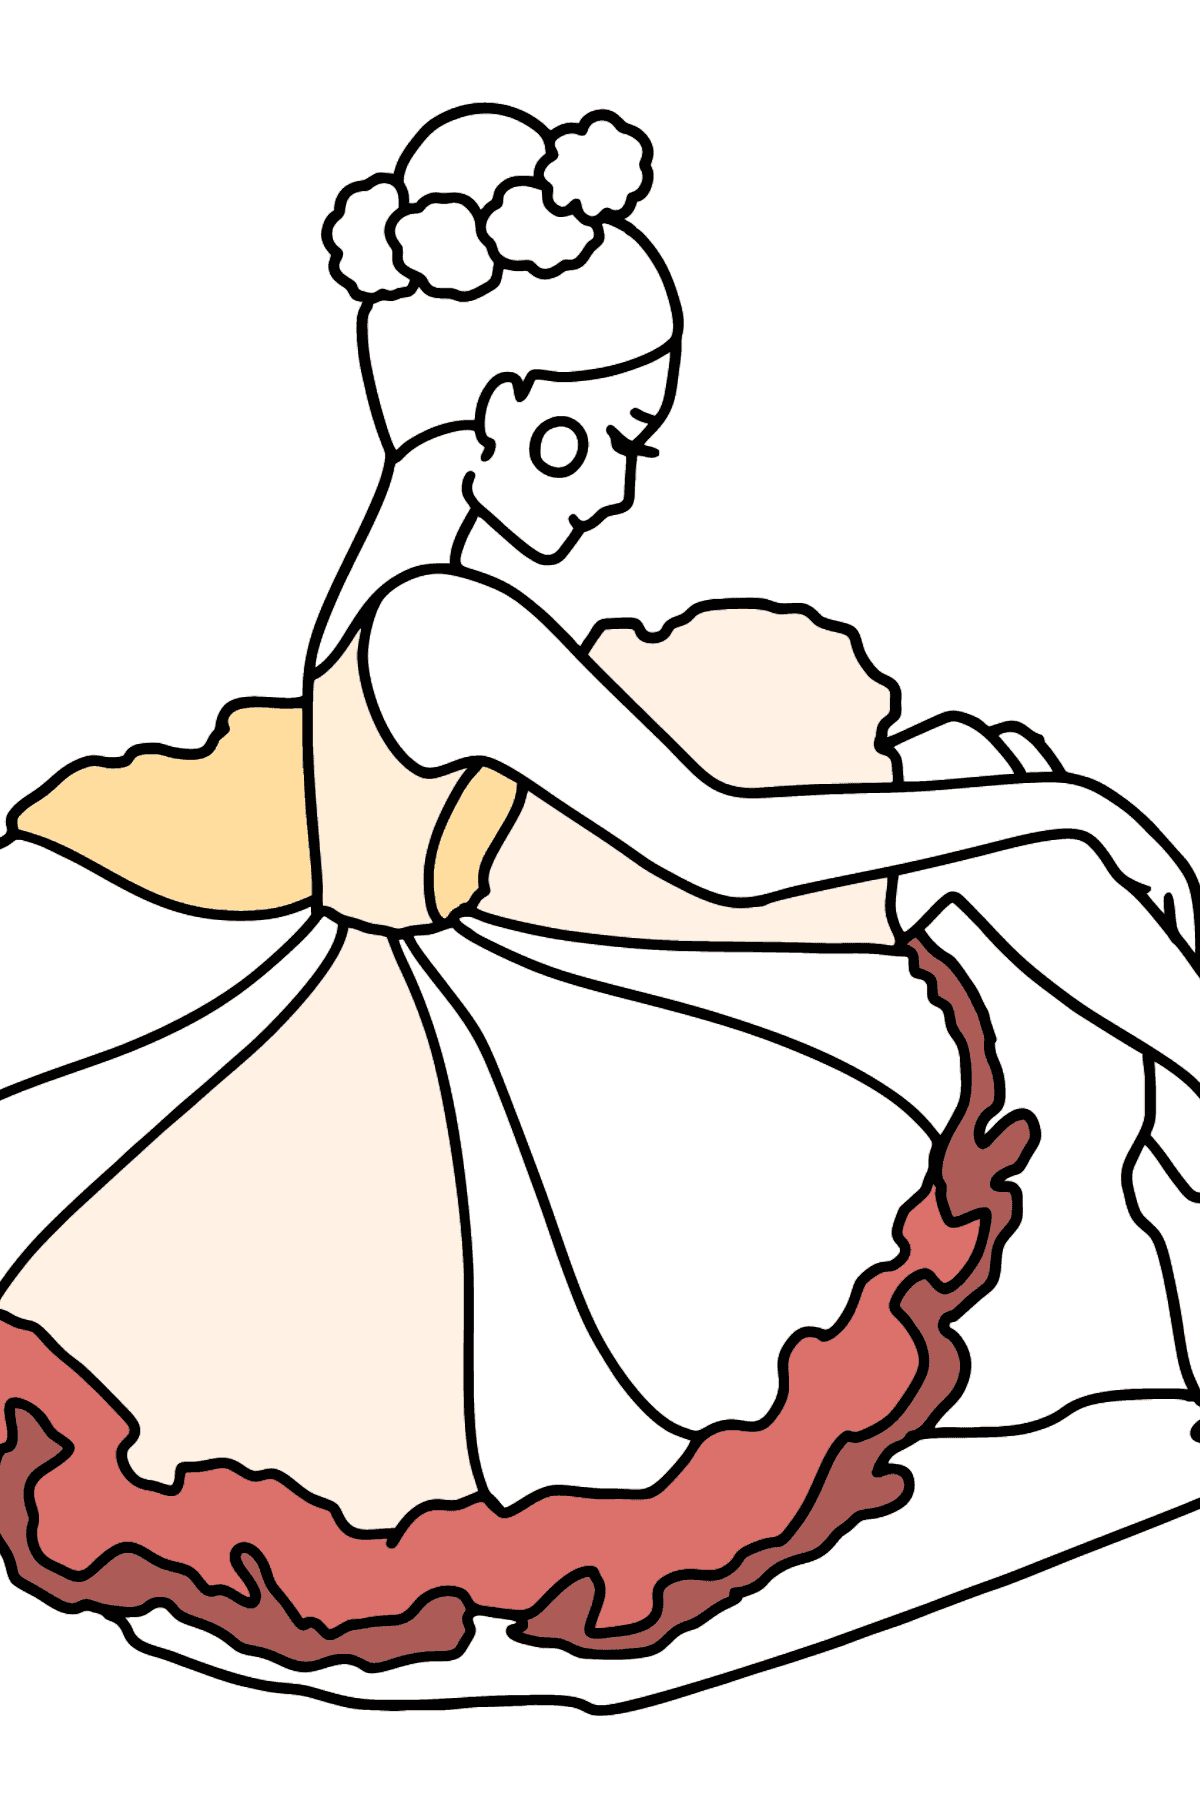 Ballerina in a Lush Dress coloring page - Coloring Pages for Kids